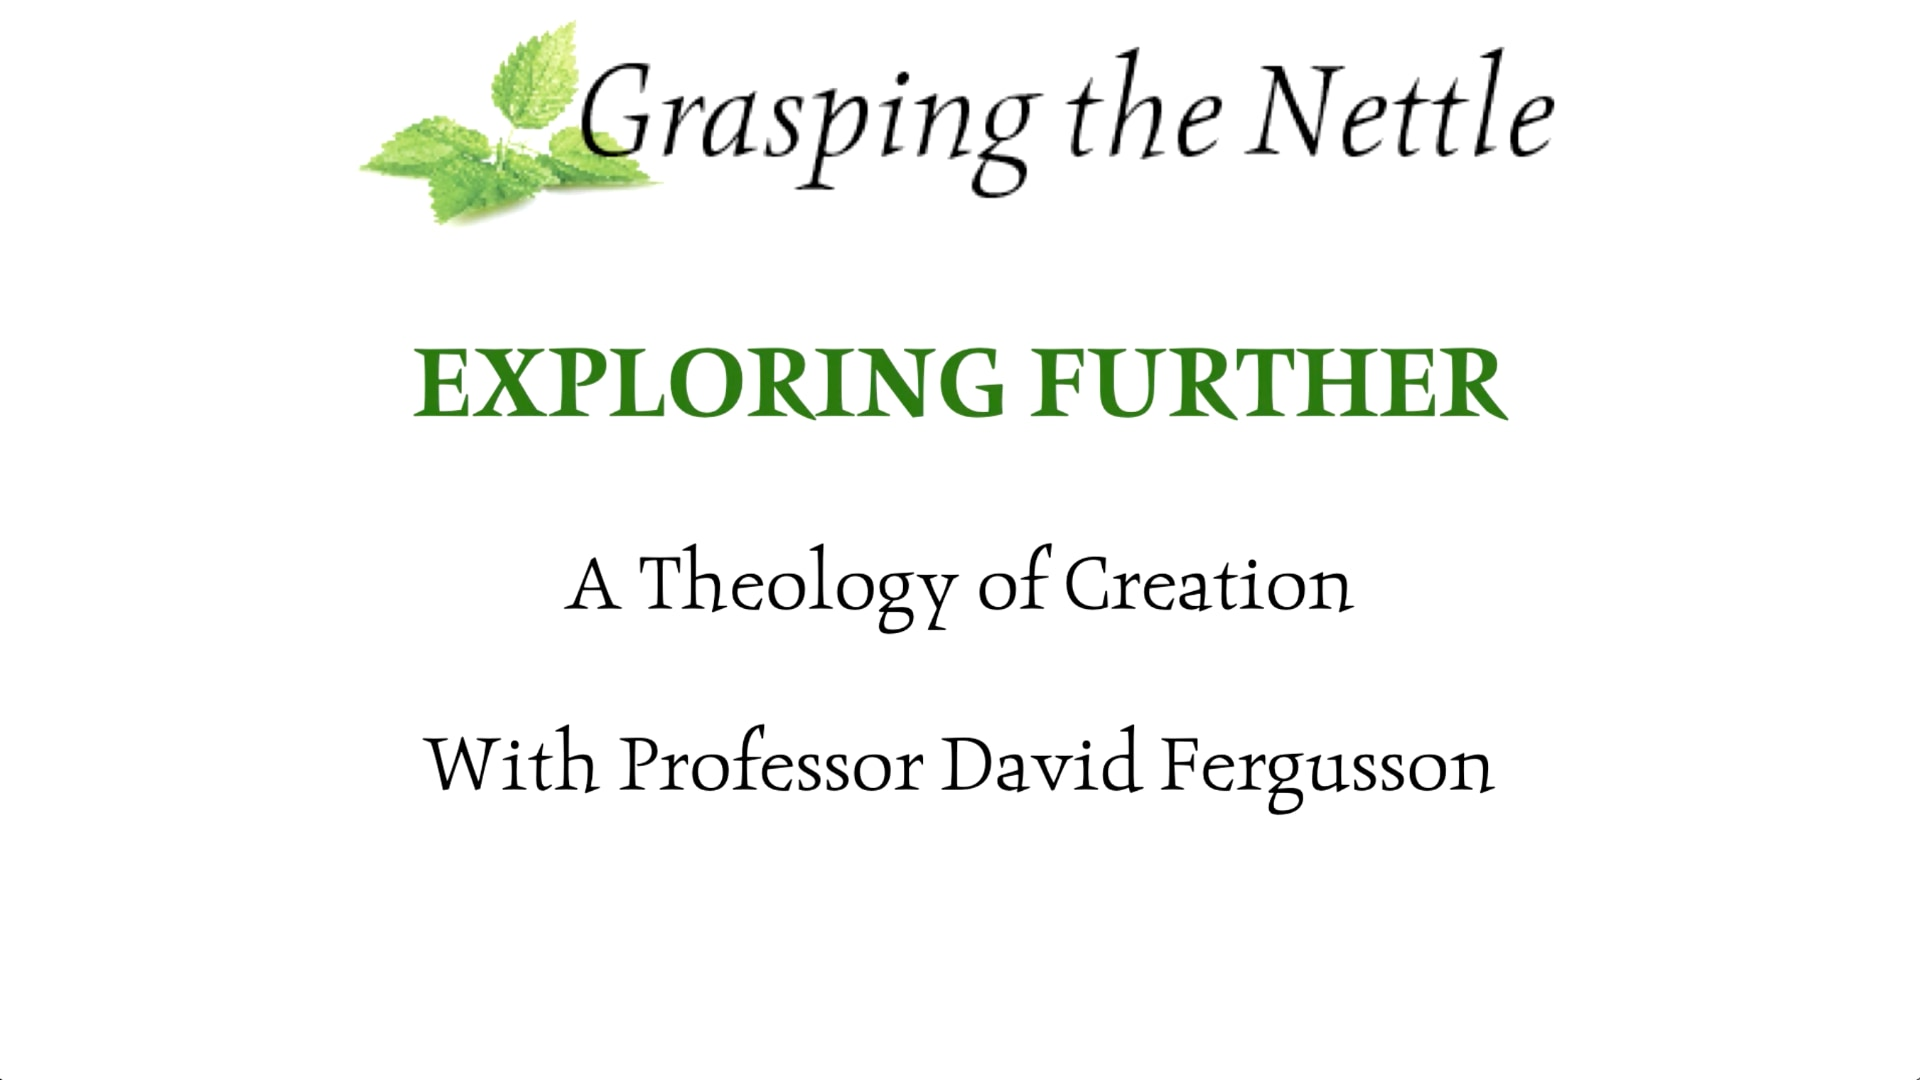 Exploring Further - A Theology of Creation